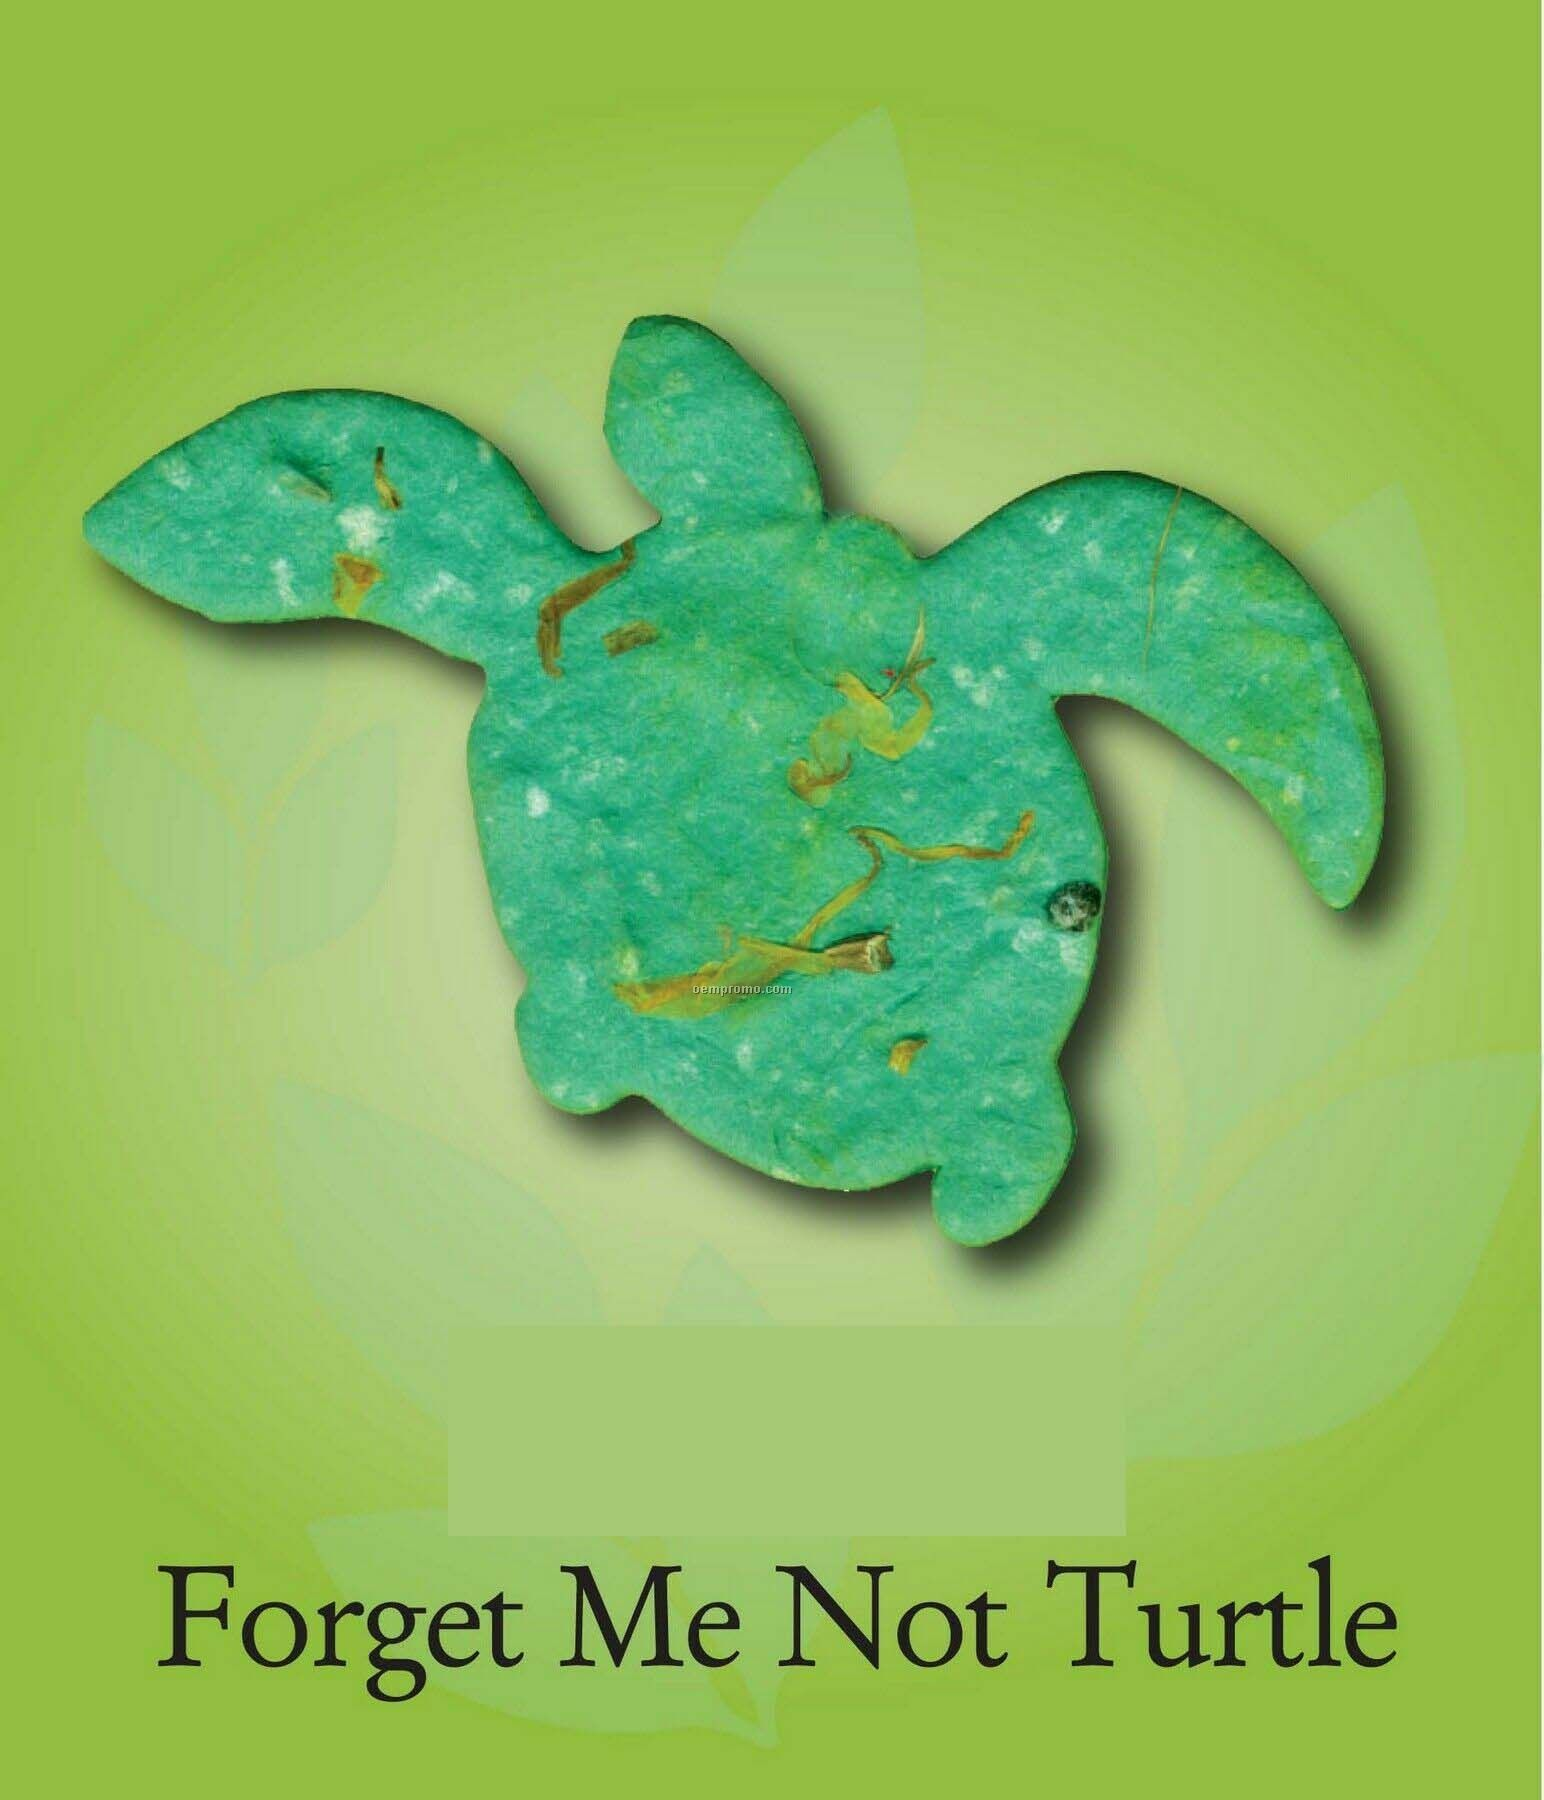 Forget me not coupons